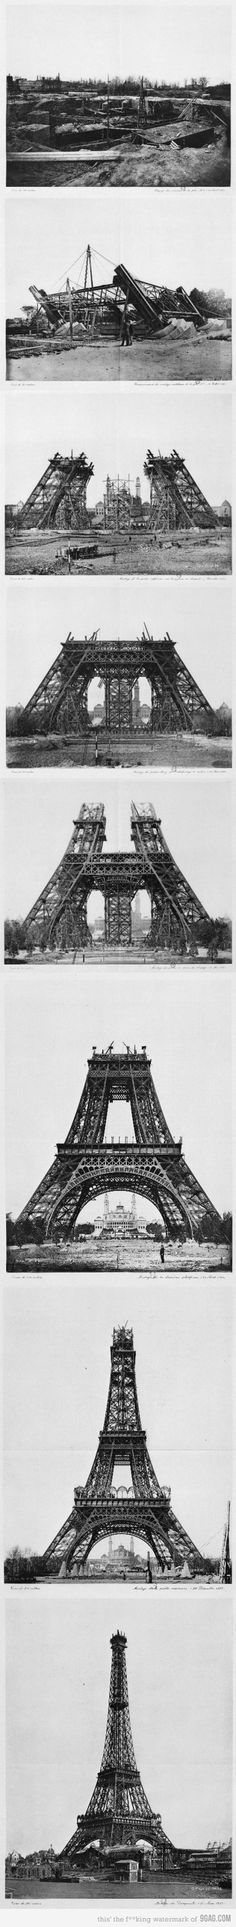 Eiffel Tower construction #architecture